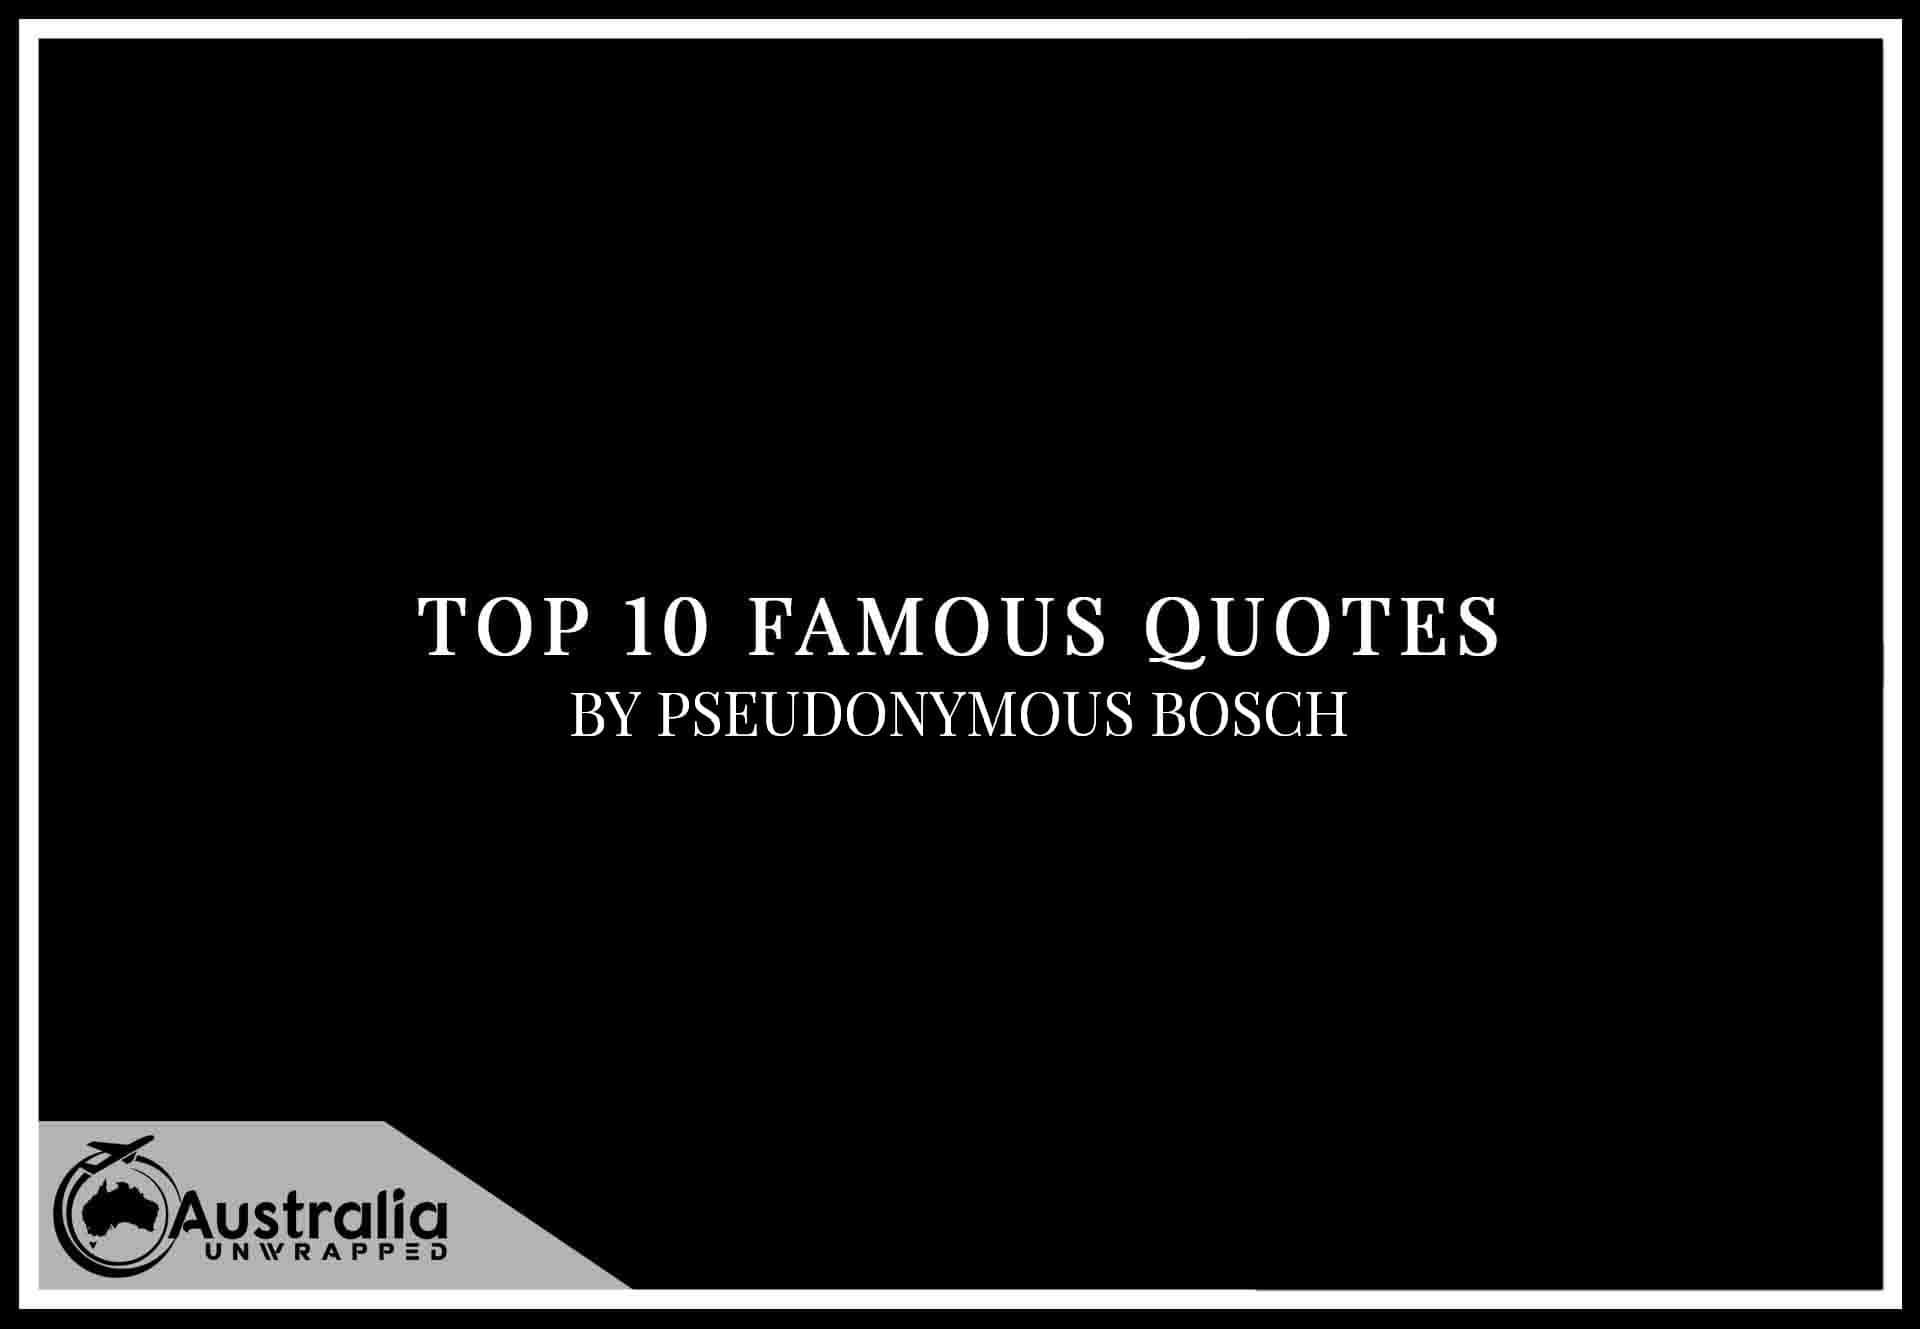 Top 10 Famous Quotes by Author Pseudonymous Bosch